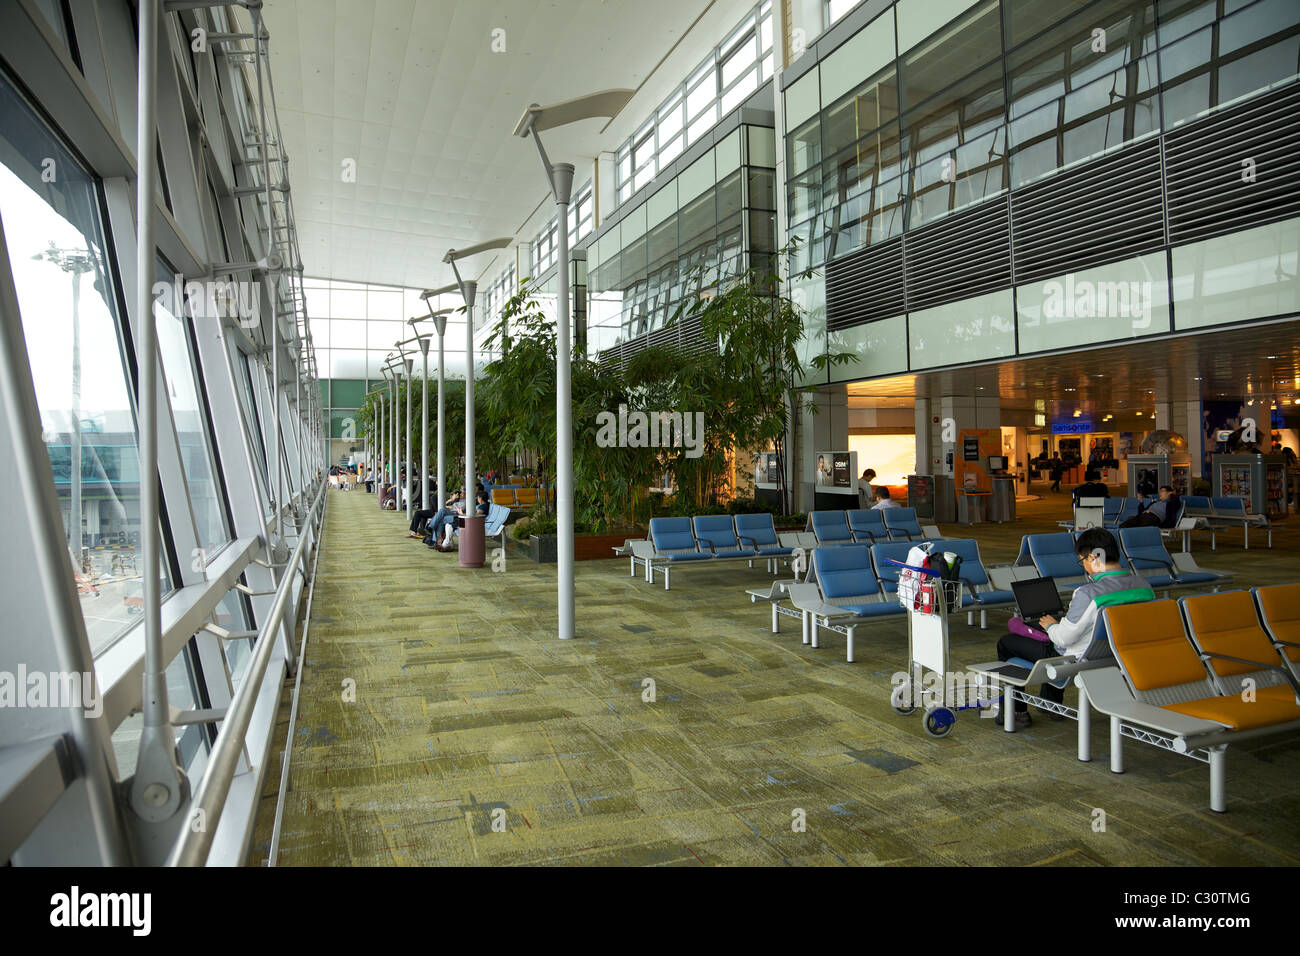 A seating area in Changi airport, Singapore - Stock Image